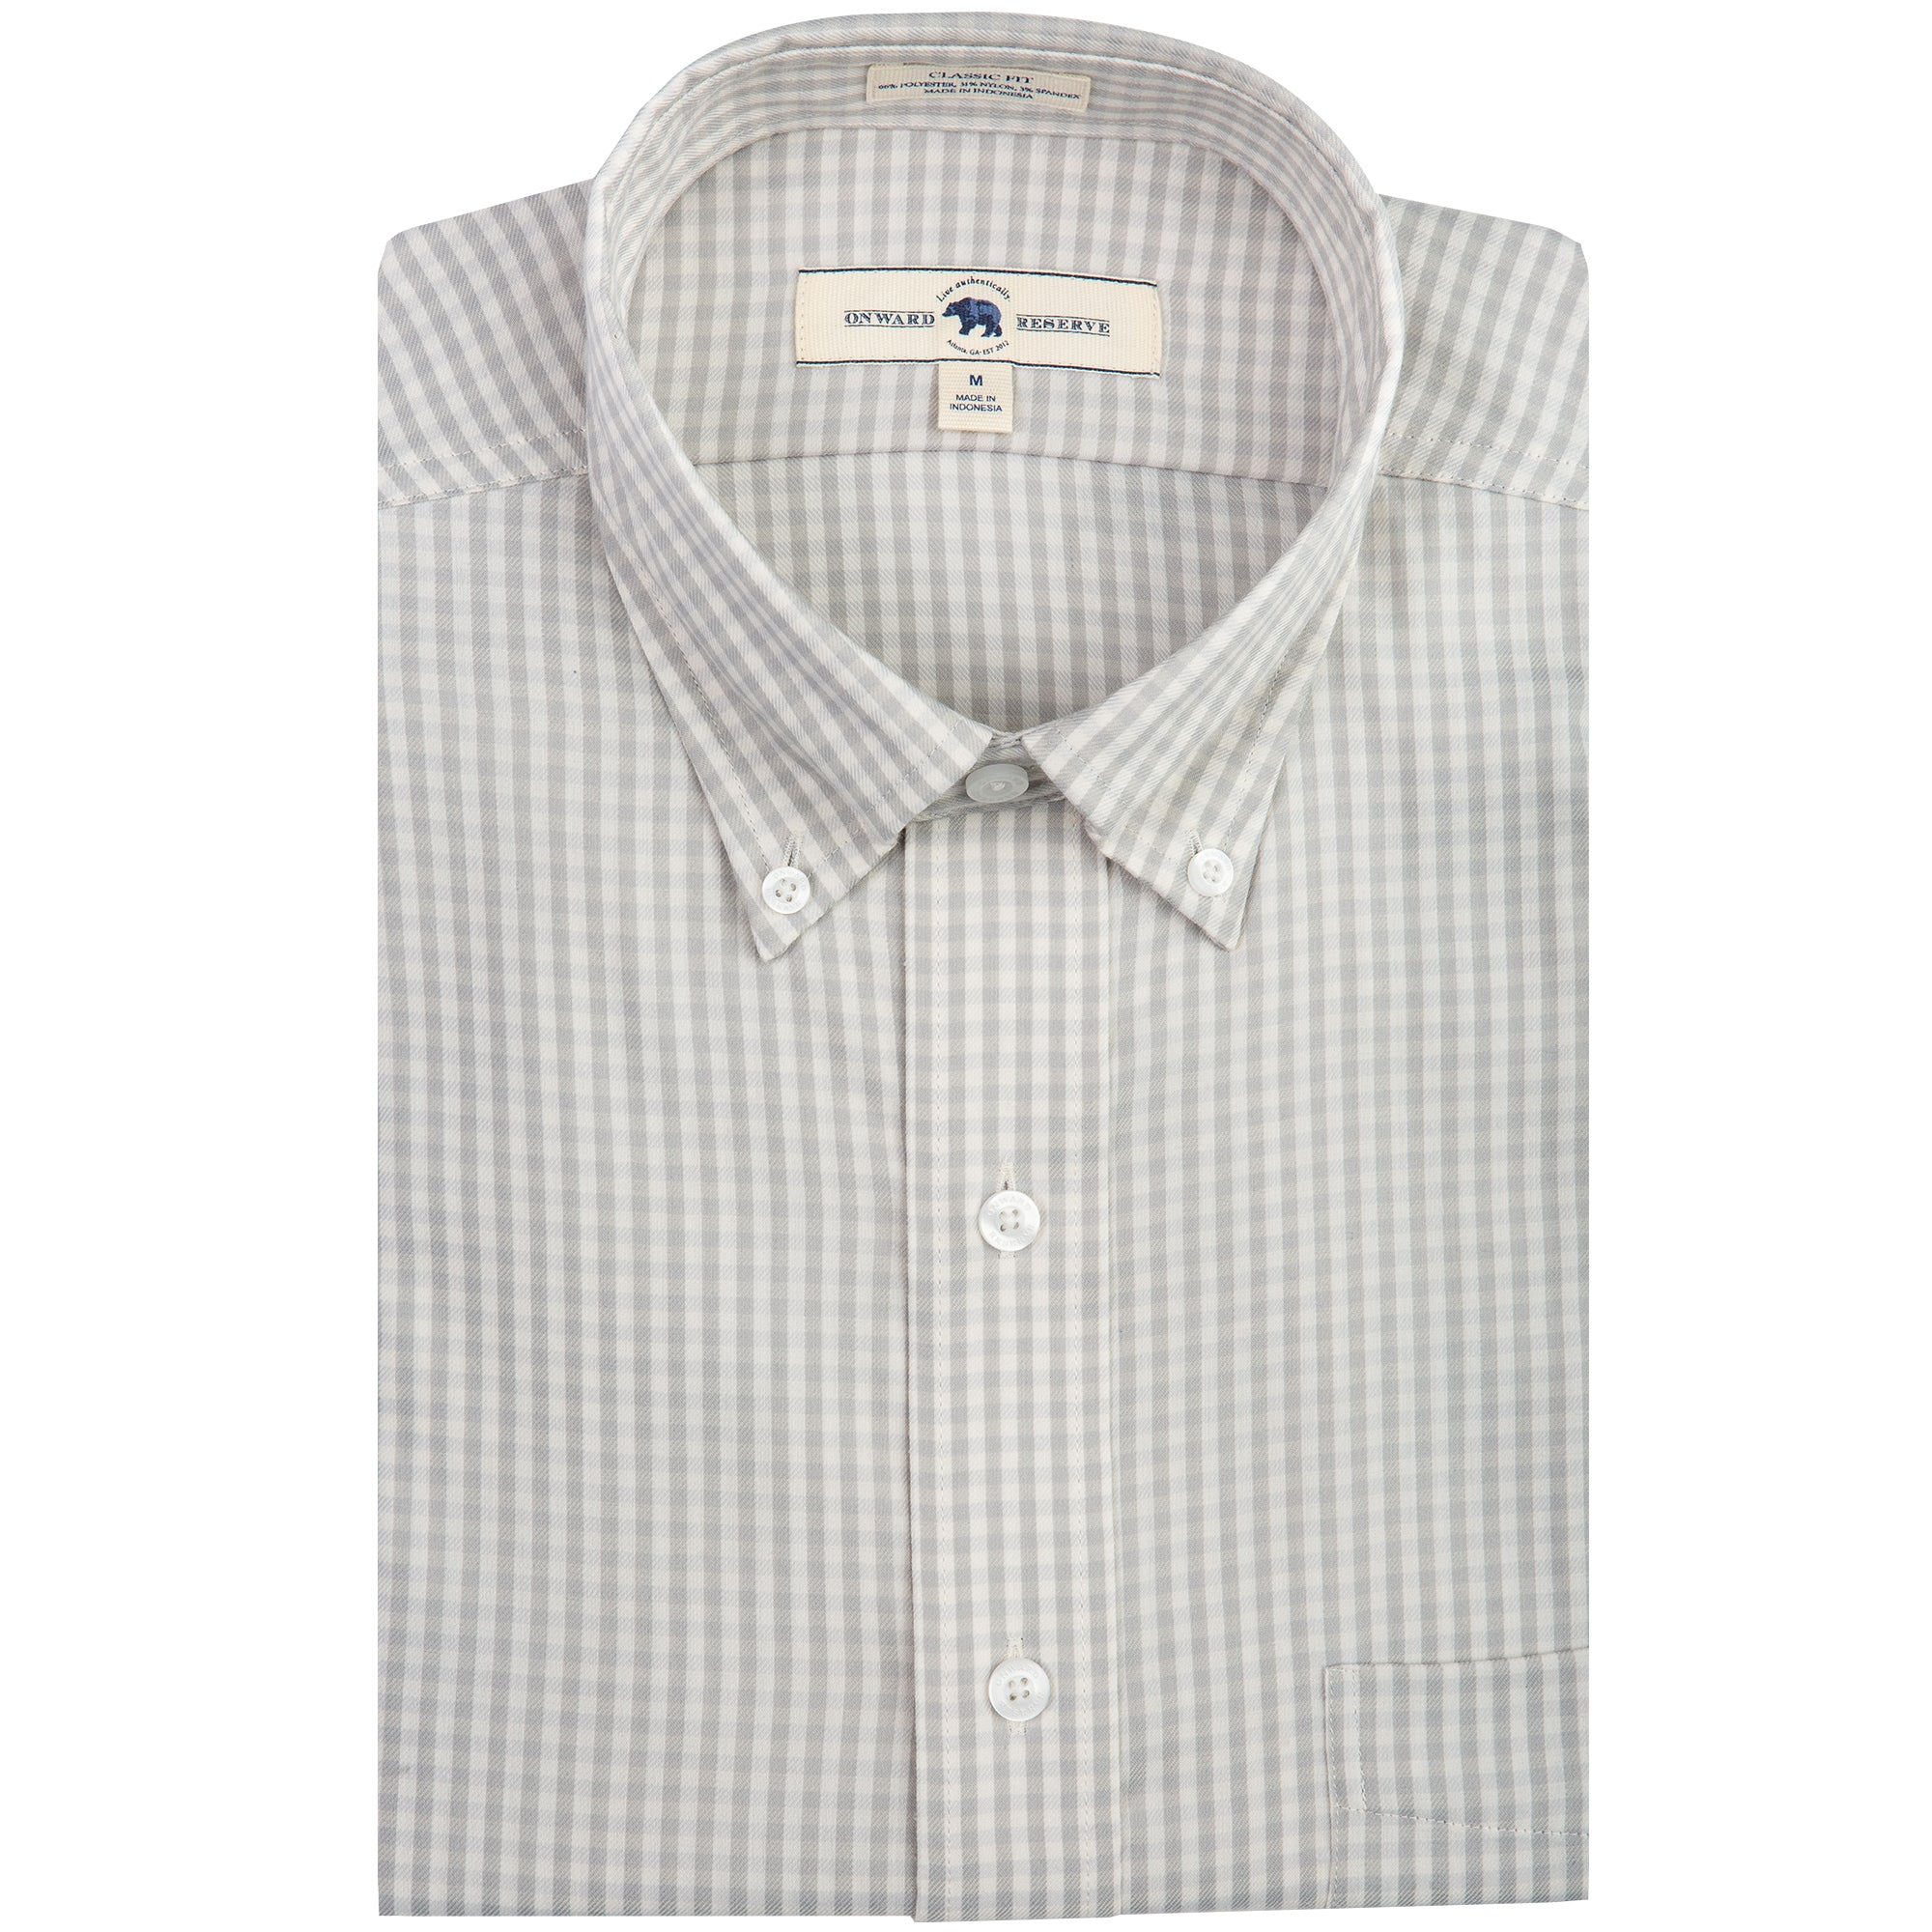 Grey Gingham Classic Fit Performance Twill Button Down